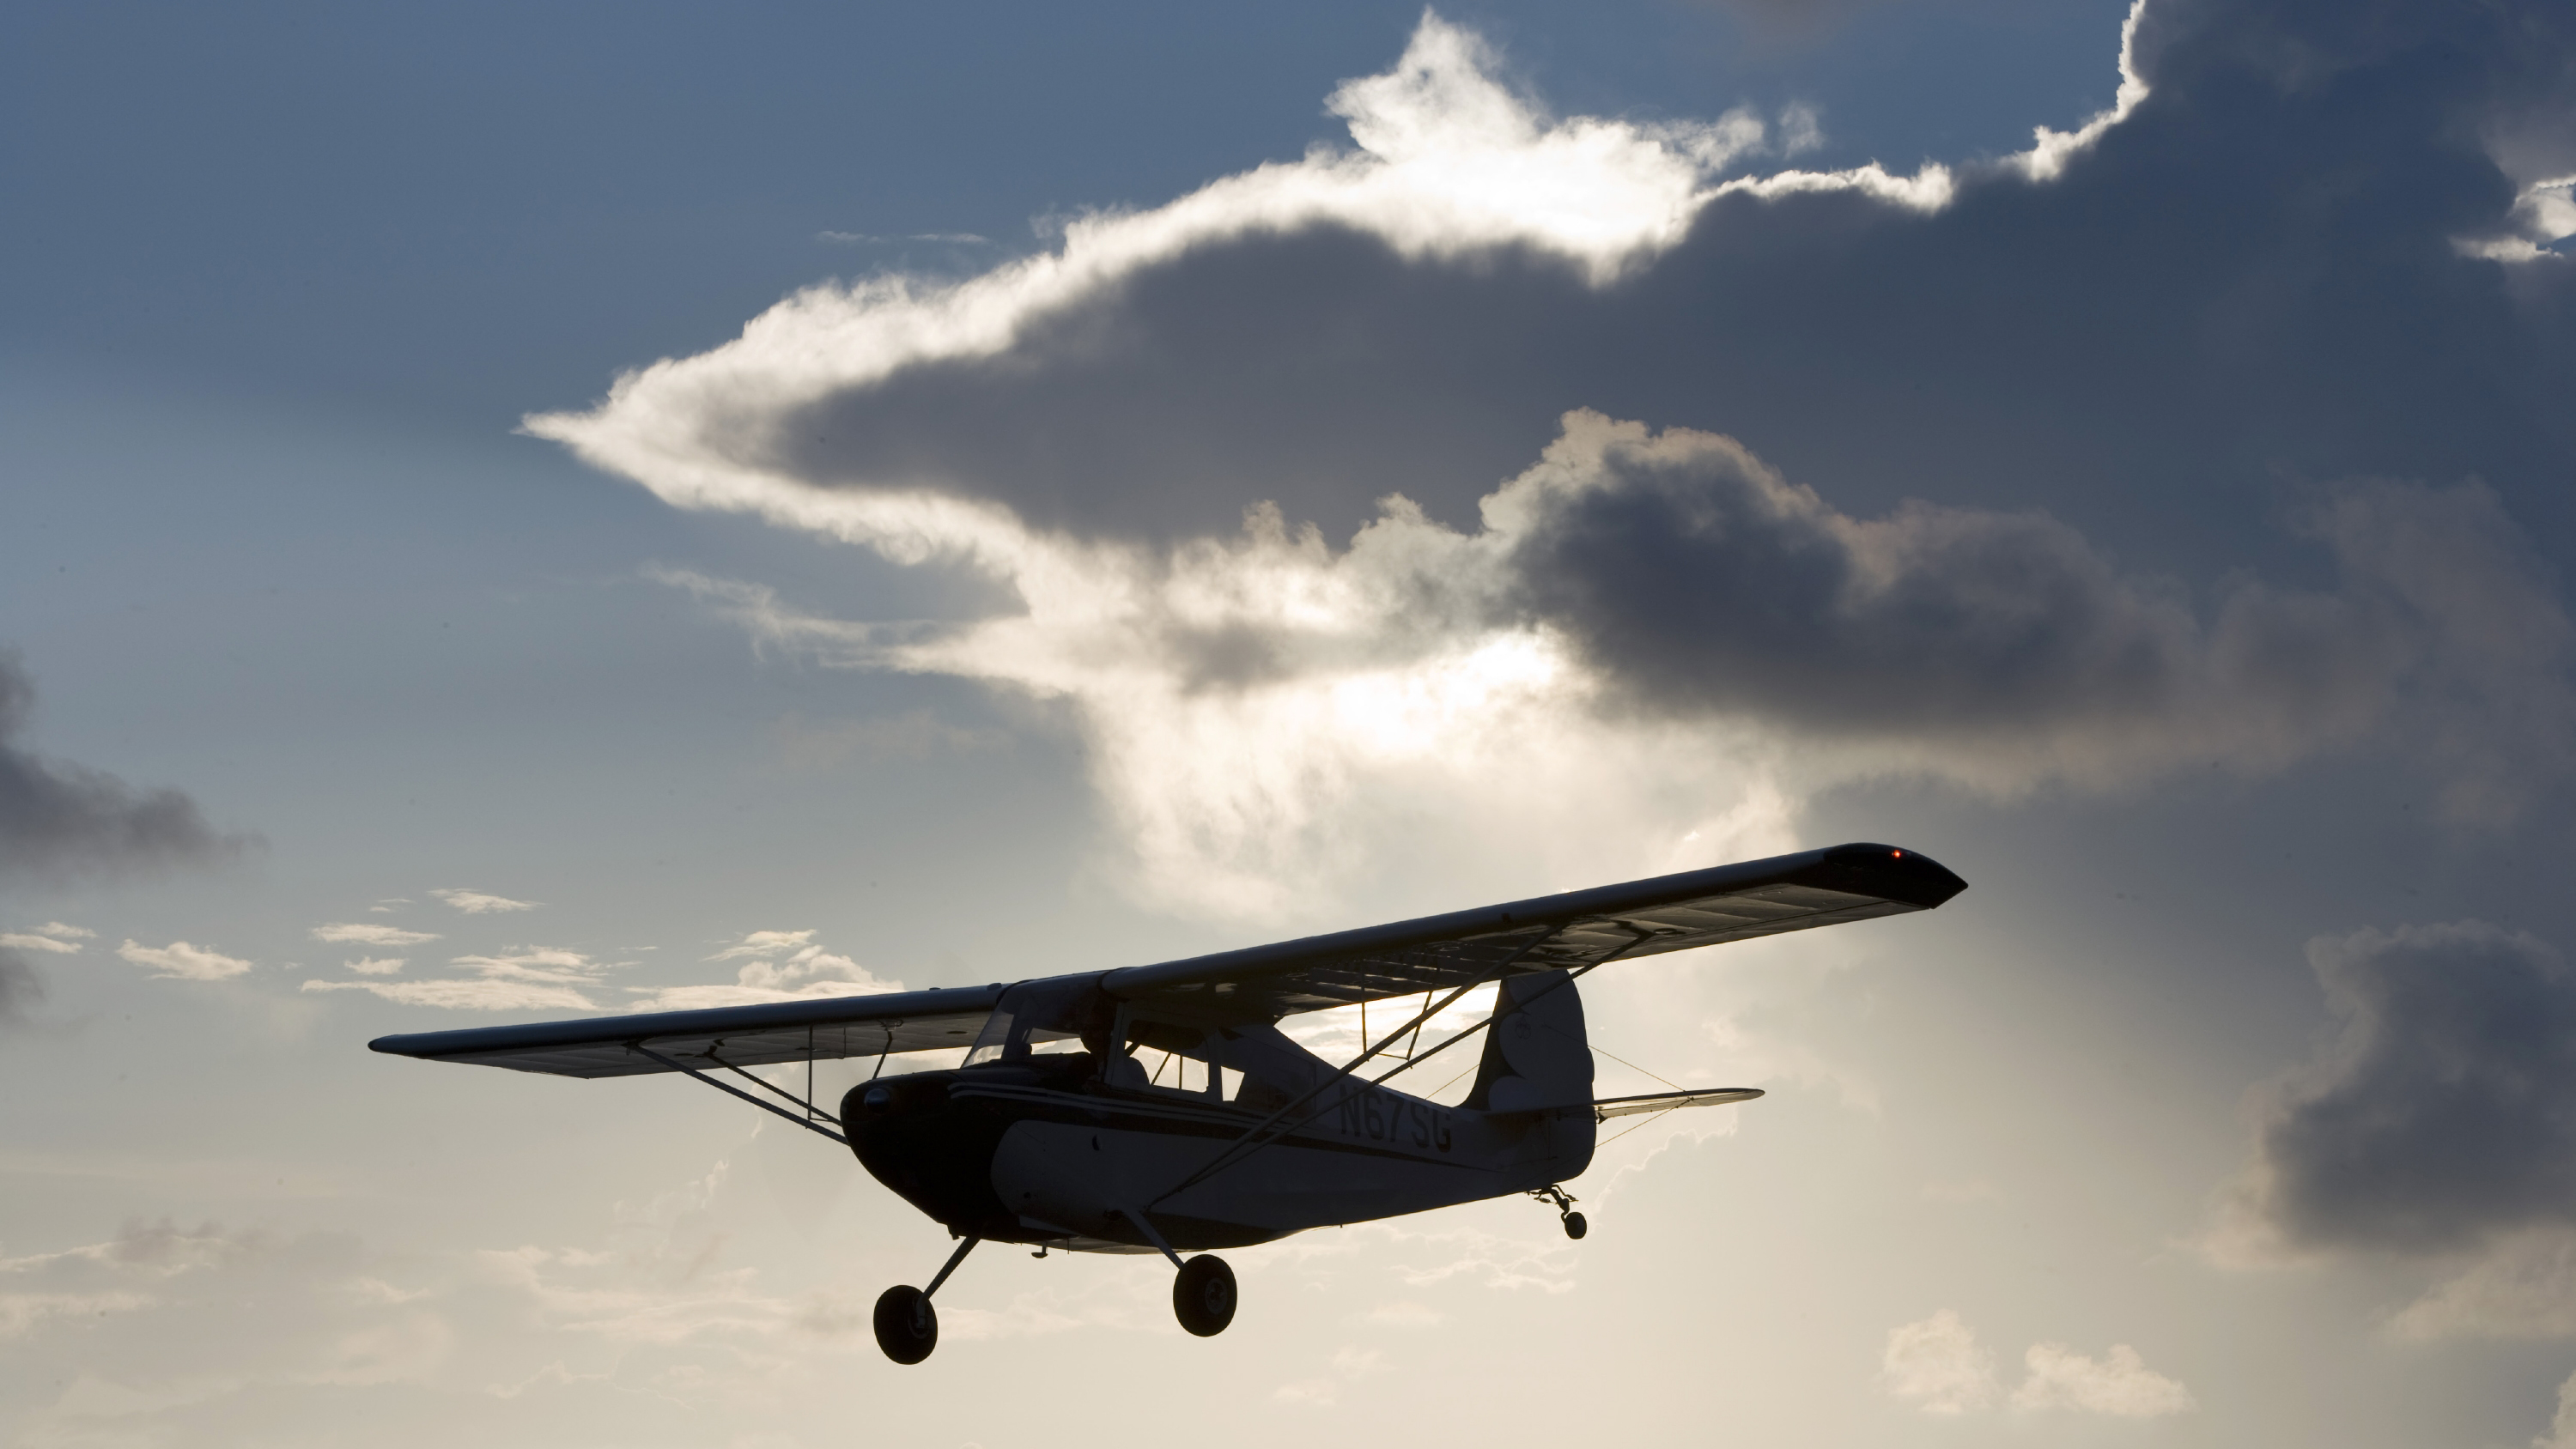 General aviation is one of the safest forms of transportation.